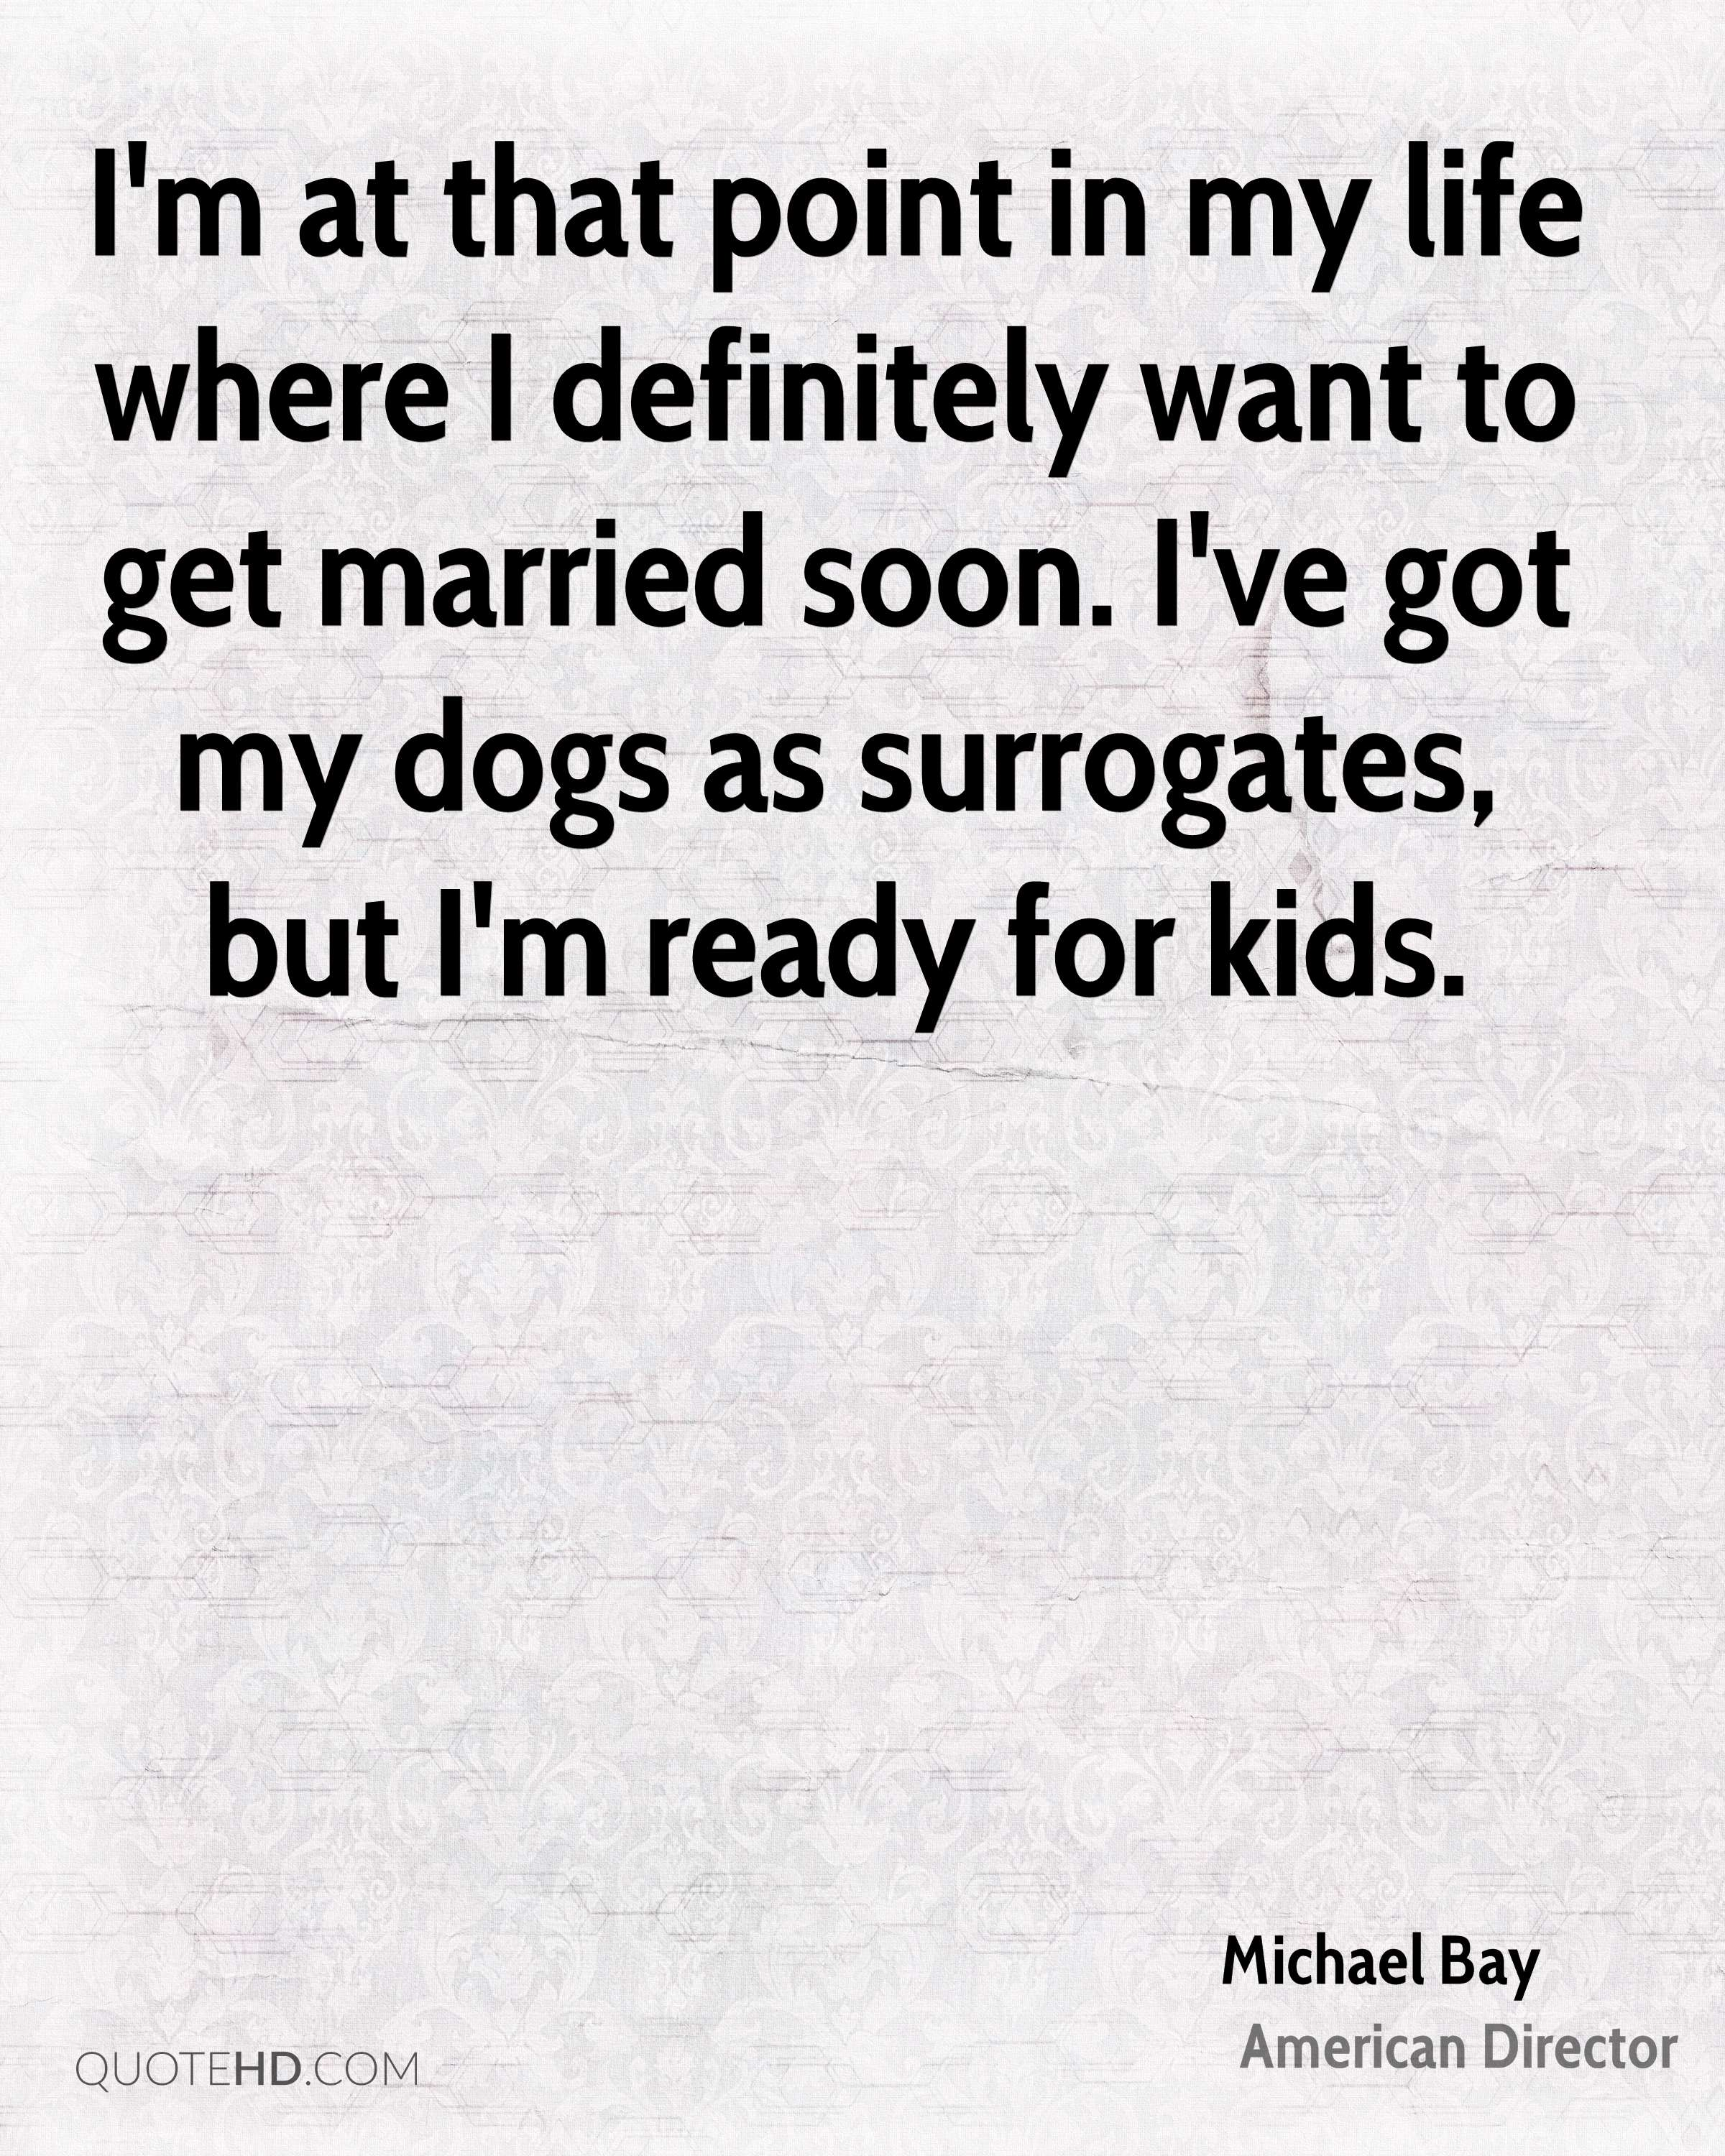 I M At That Point In My Life Where Definitely Want To Get Married